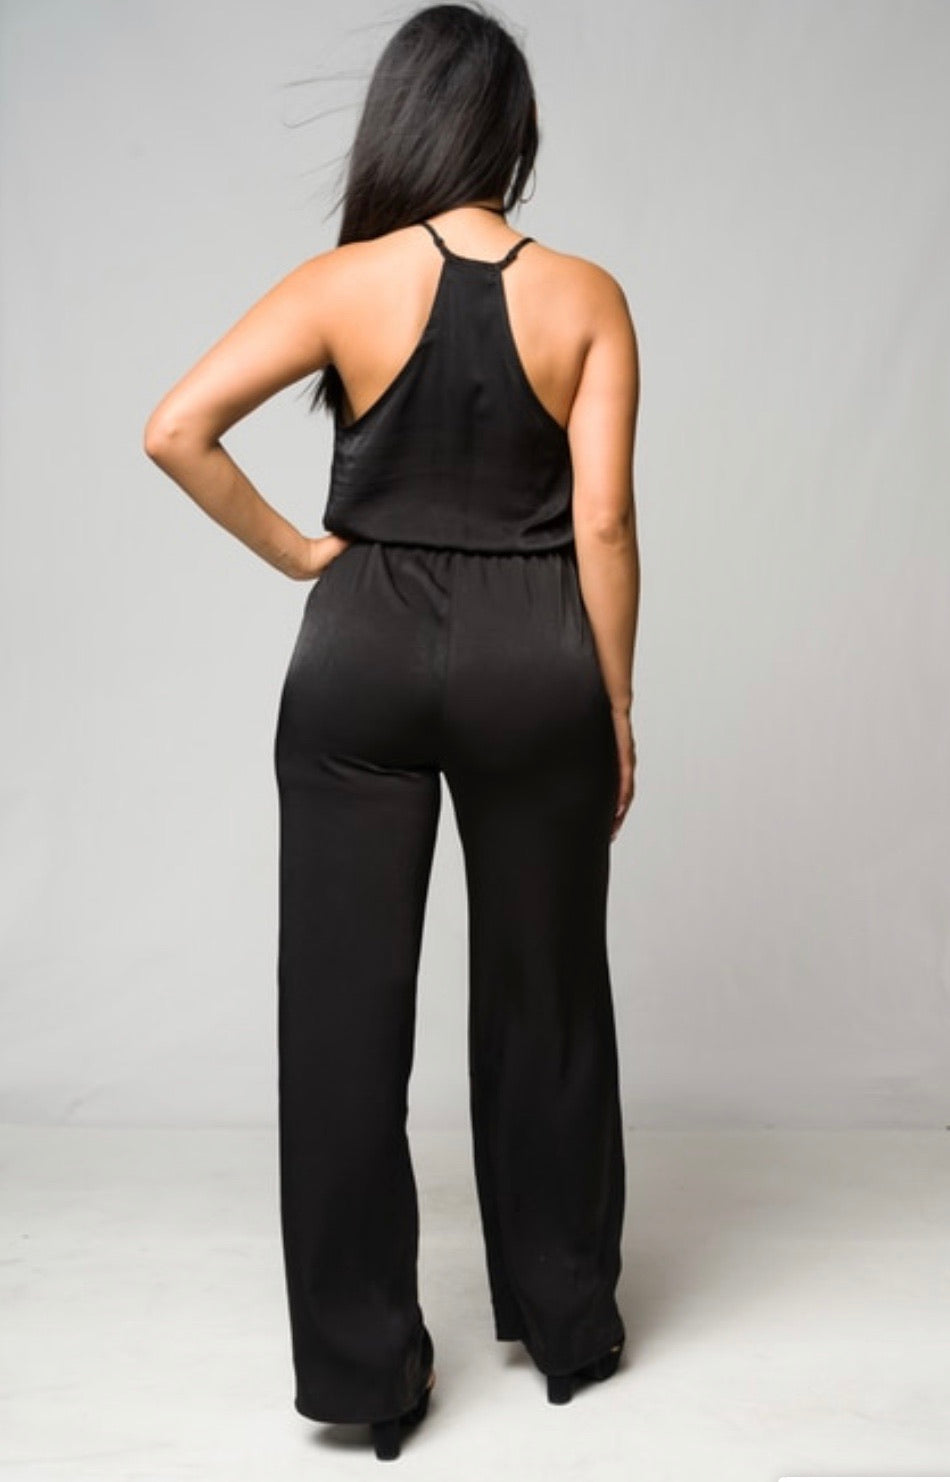 Classic Black Jumper - The Divaz Closet